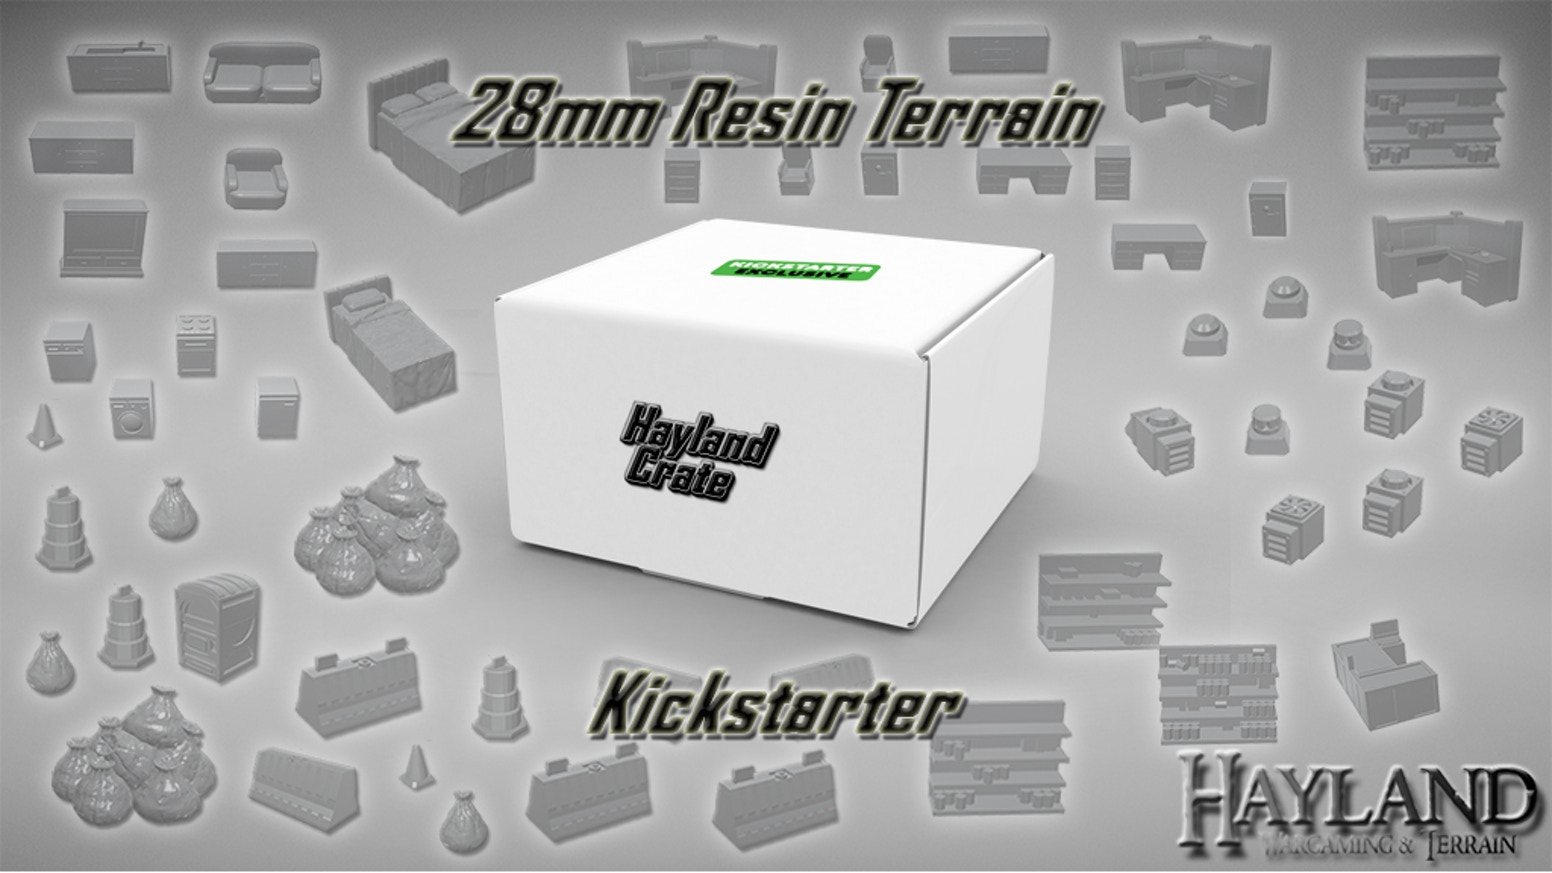 Hayland Crate: 28mm Resin Terrain!